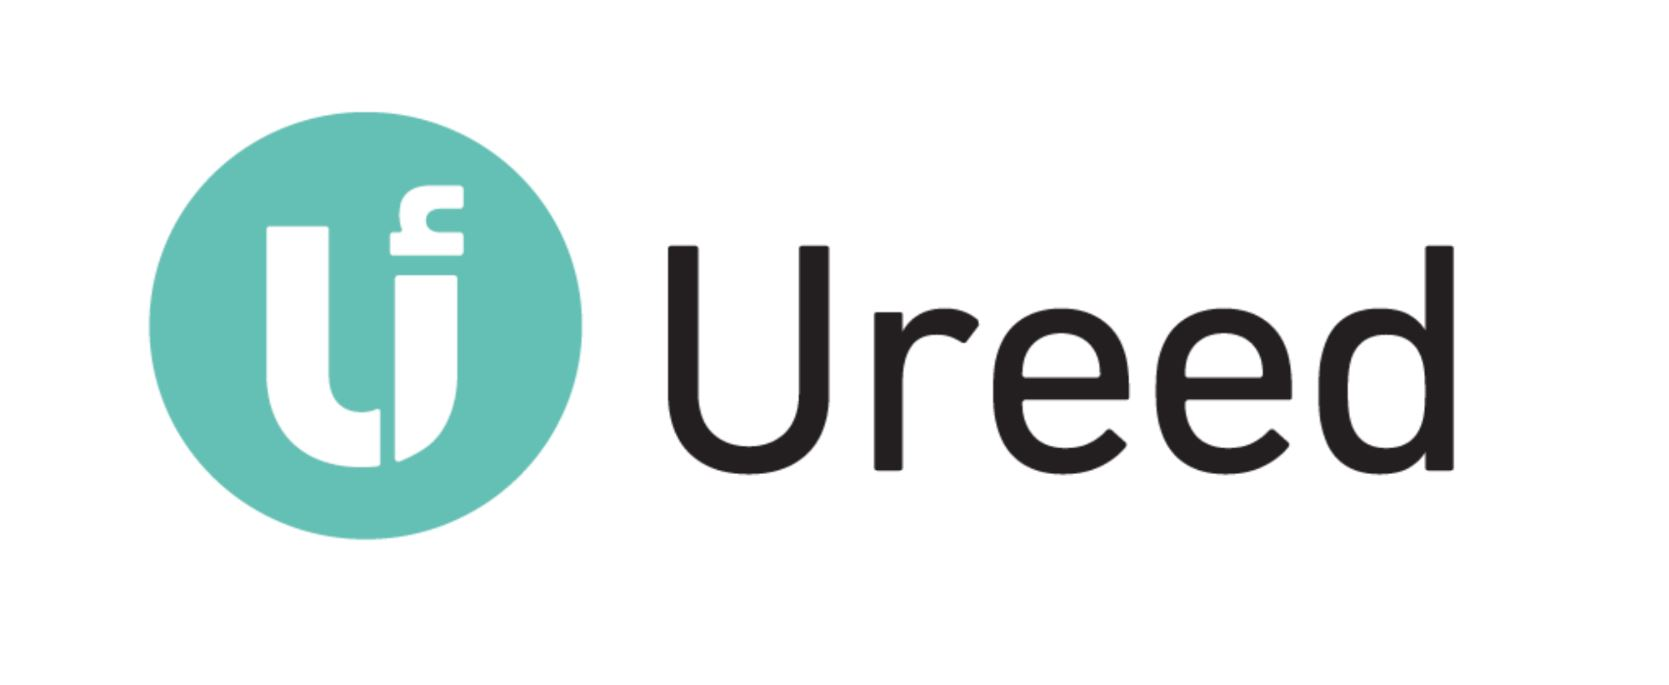 Ureed Launches First Online Course Through Ureed Academy